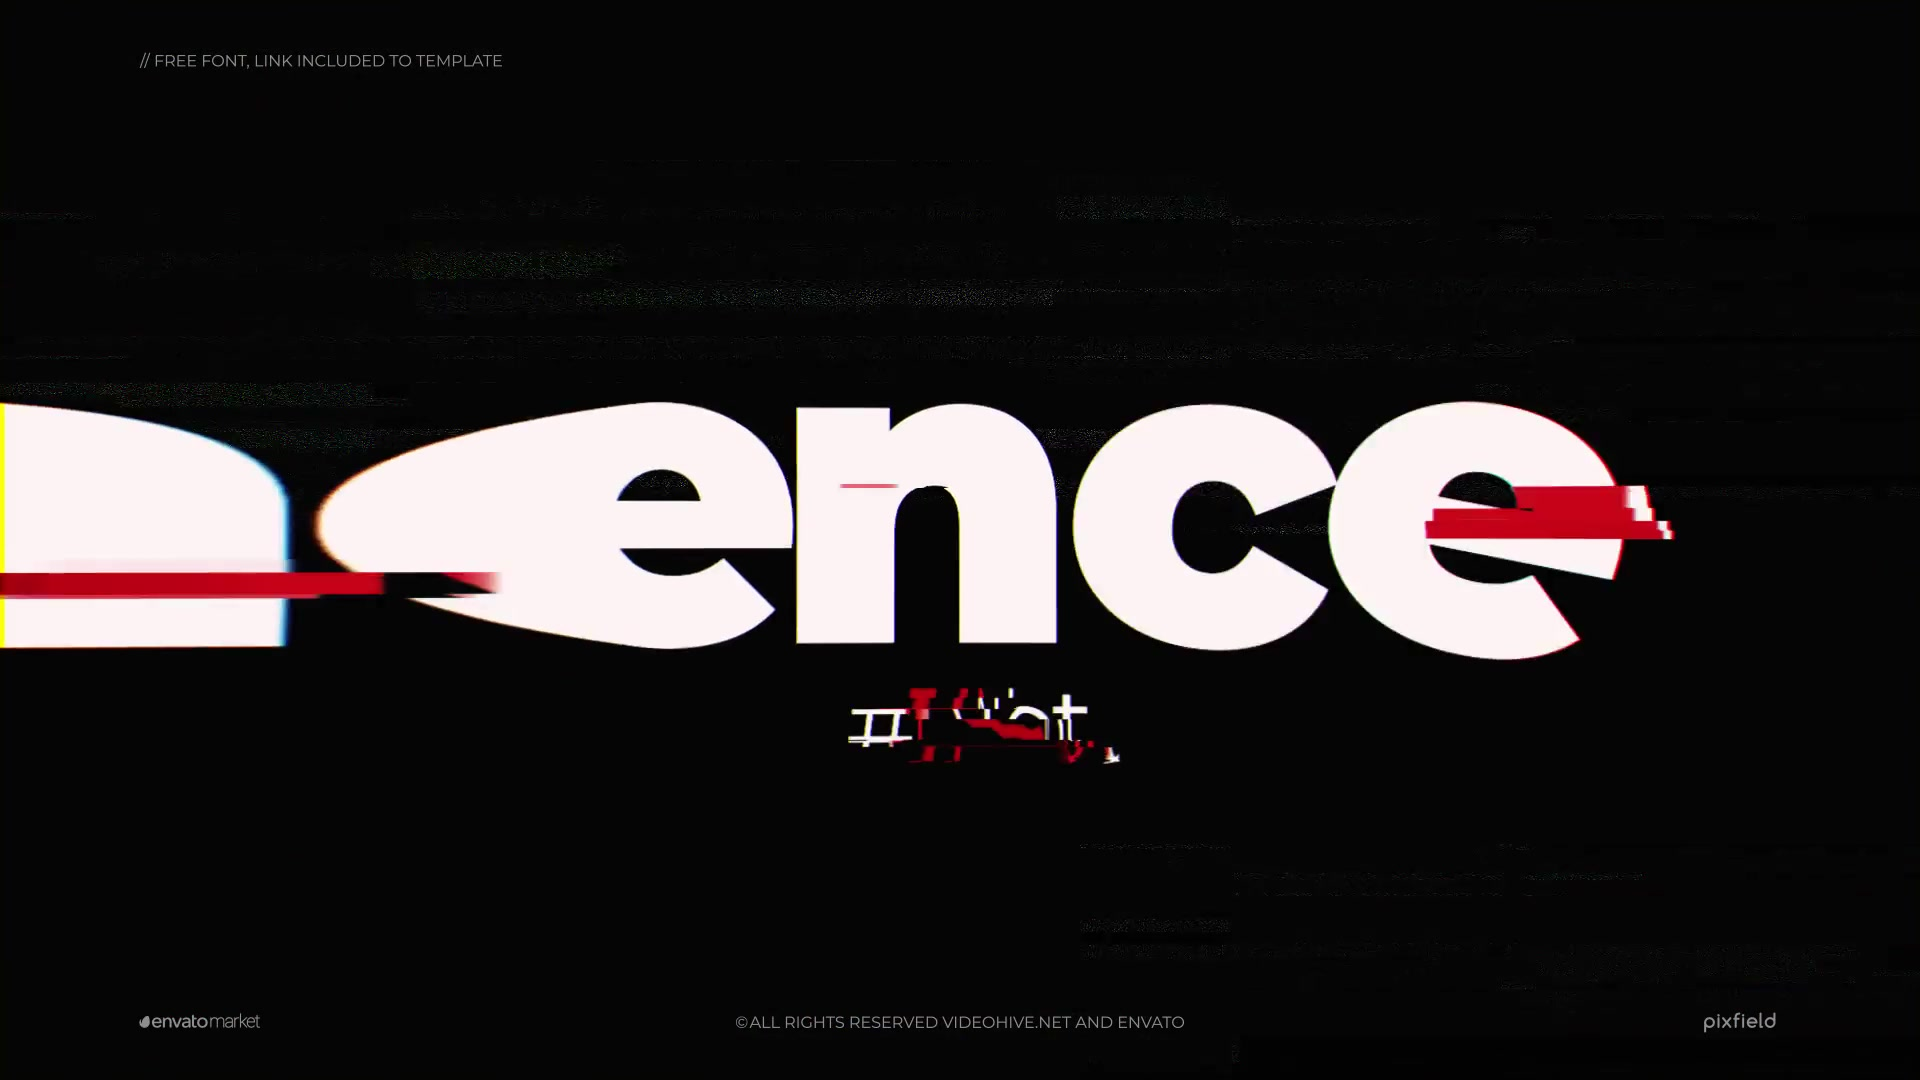 Eminence | Glitch Logo Videohive 24990819 After Effects Image 2